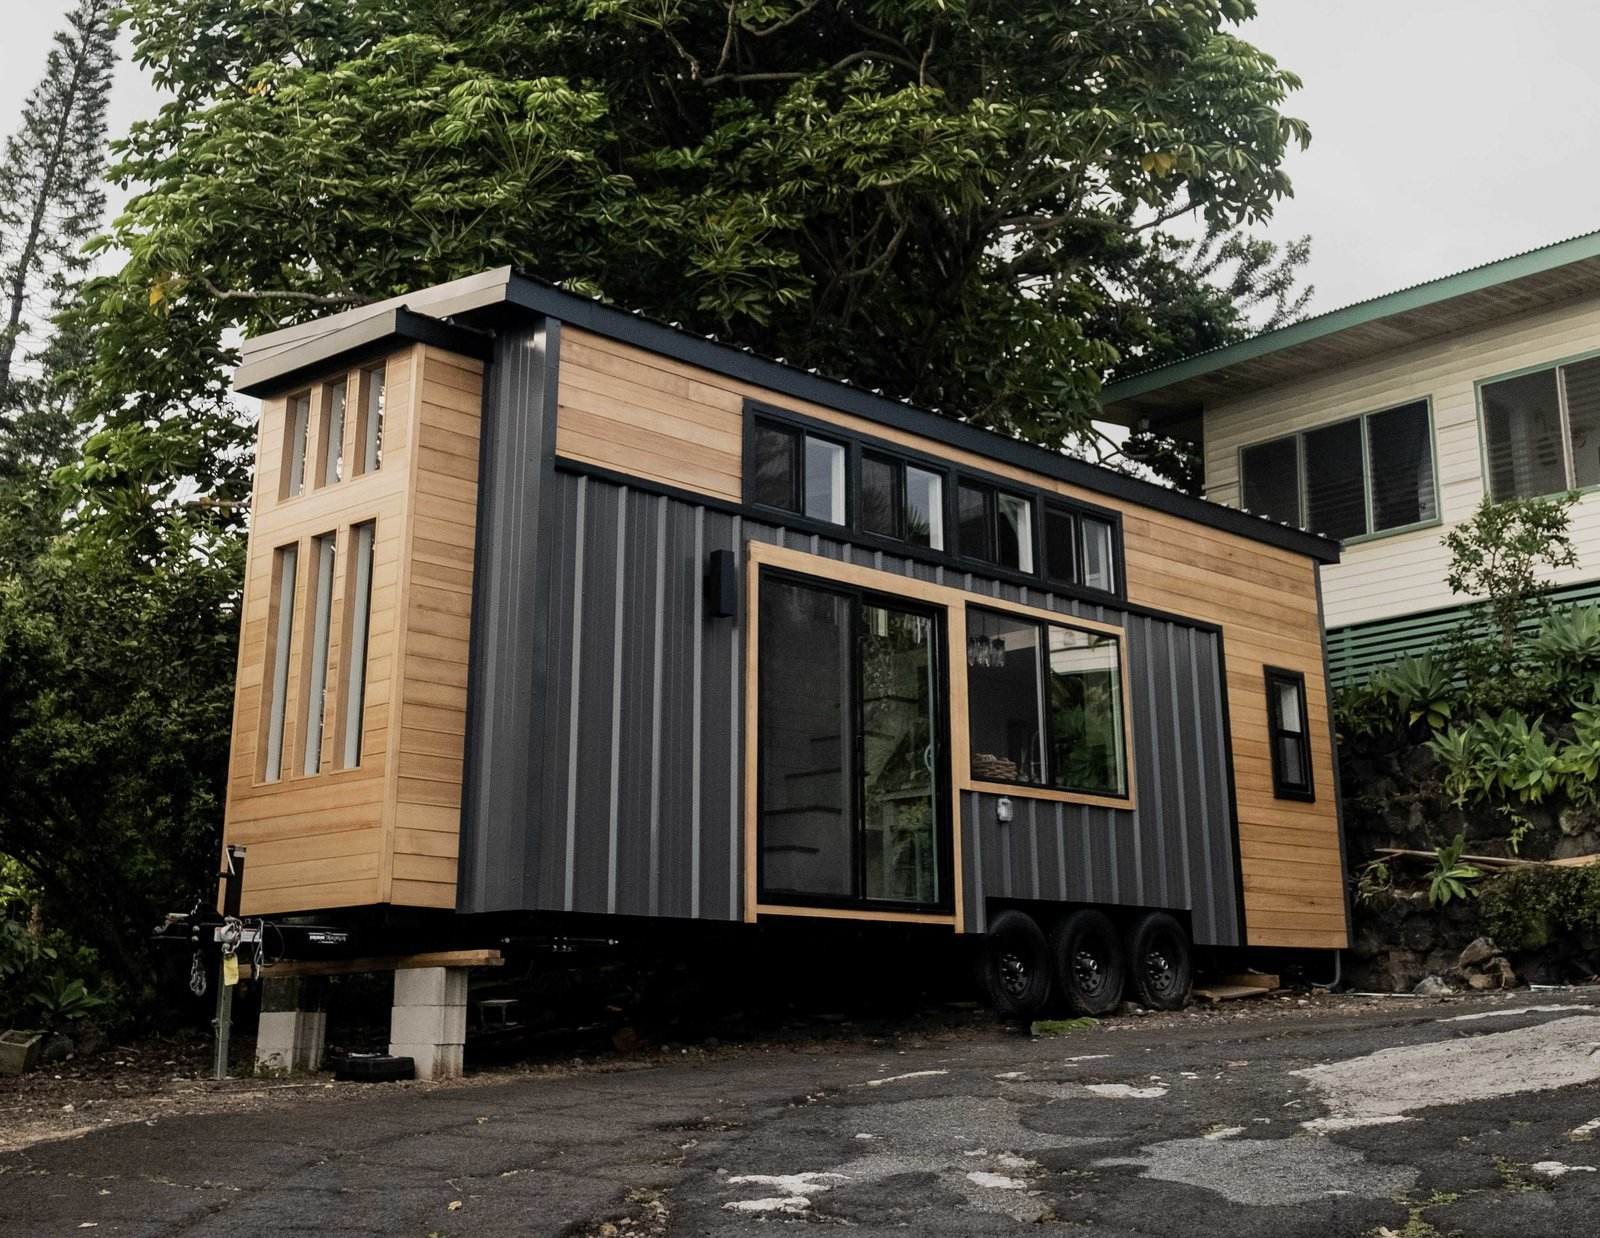 Exterior, Shingles Roof Material, Wood Siding Material, Tiny Home Building Type, and Flat RoofLine Facing a COVID-19 shutdown, Taylor and Michaella McClendon recruit their family to build a breezy tiny home on the Big Island—which you can now purchase for $99,800.  Photo 1 of 14 in A Hawaii-Based Couple Build a Luminous Tiny House in Just 25 Days